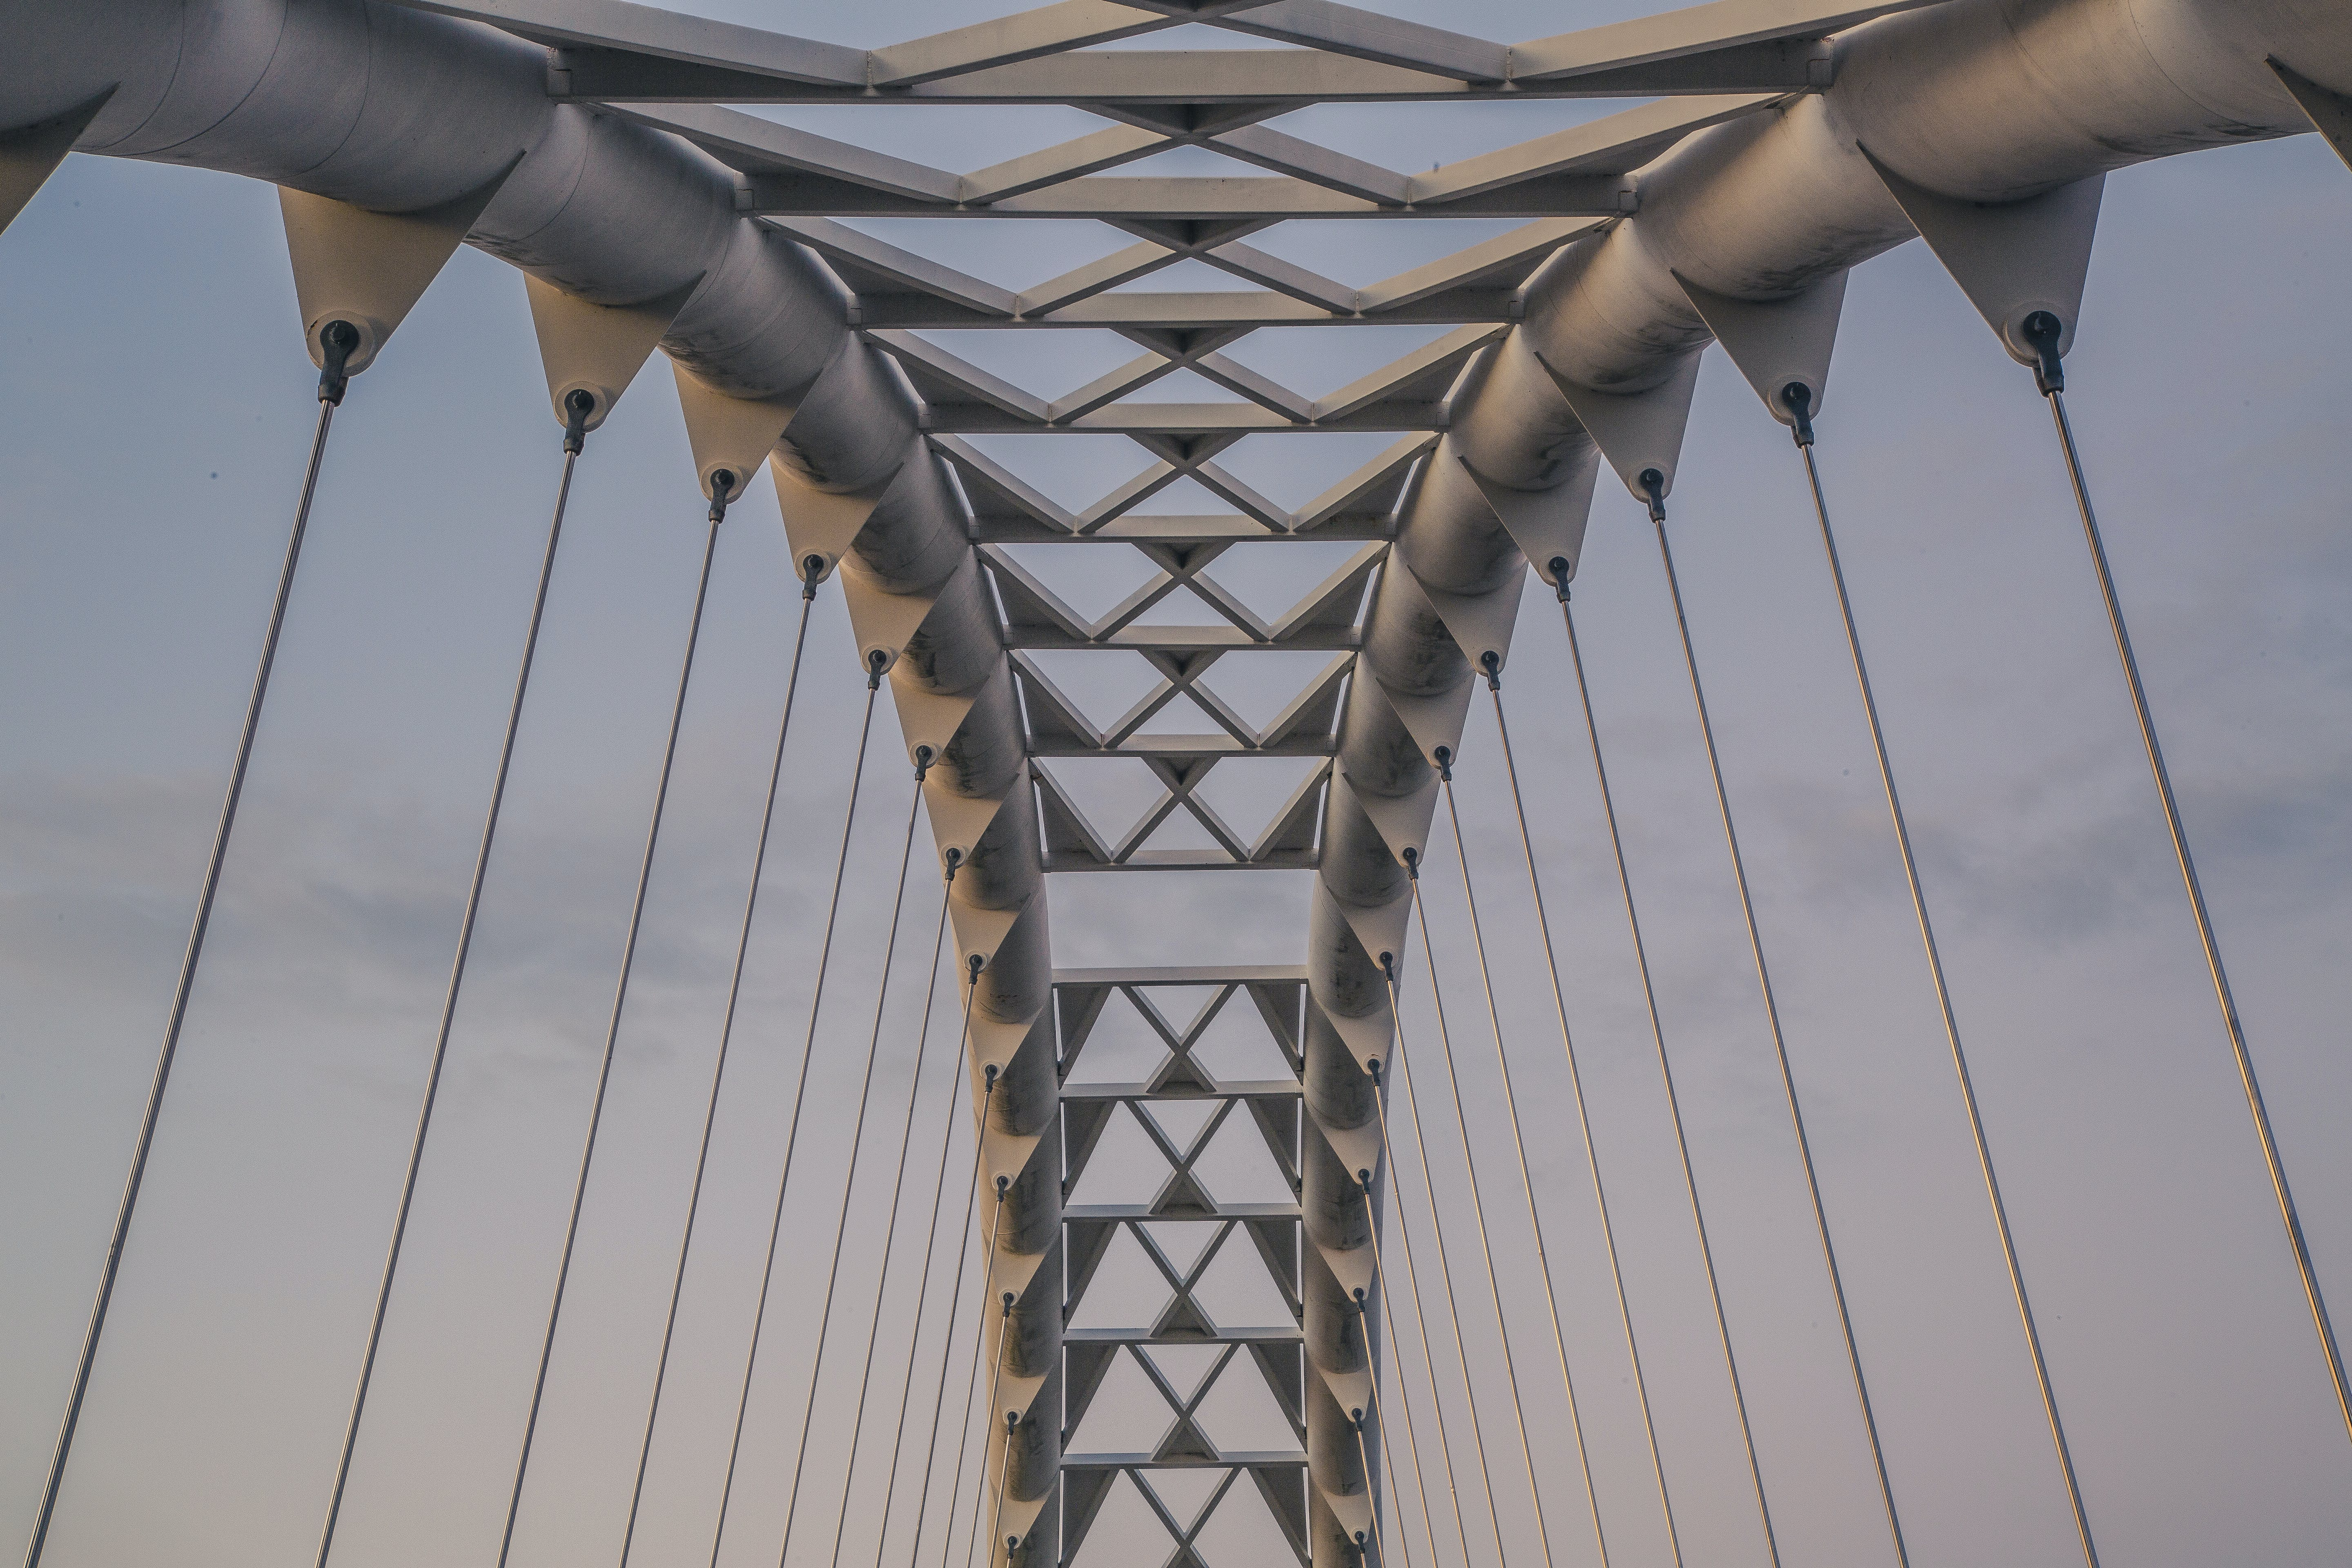 Architectural Photography of Gray Suspension Bridge